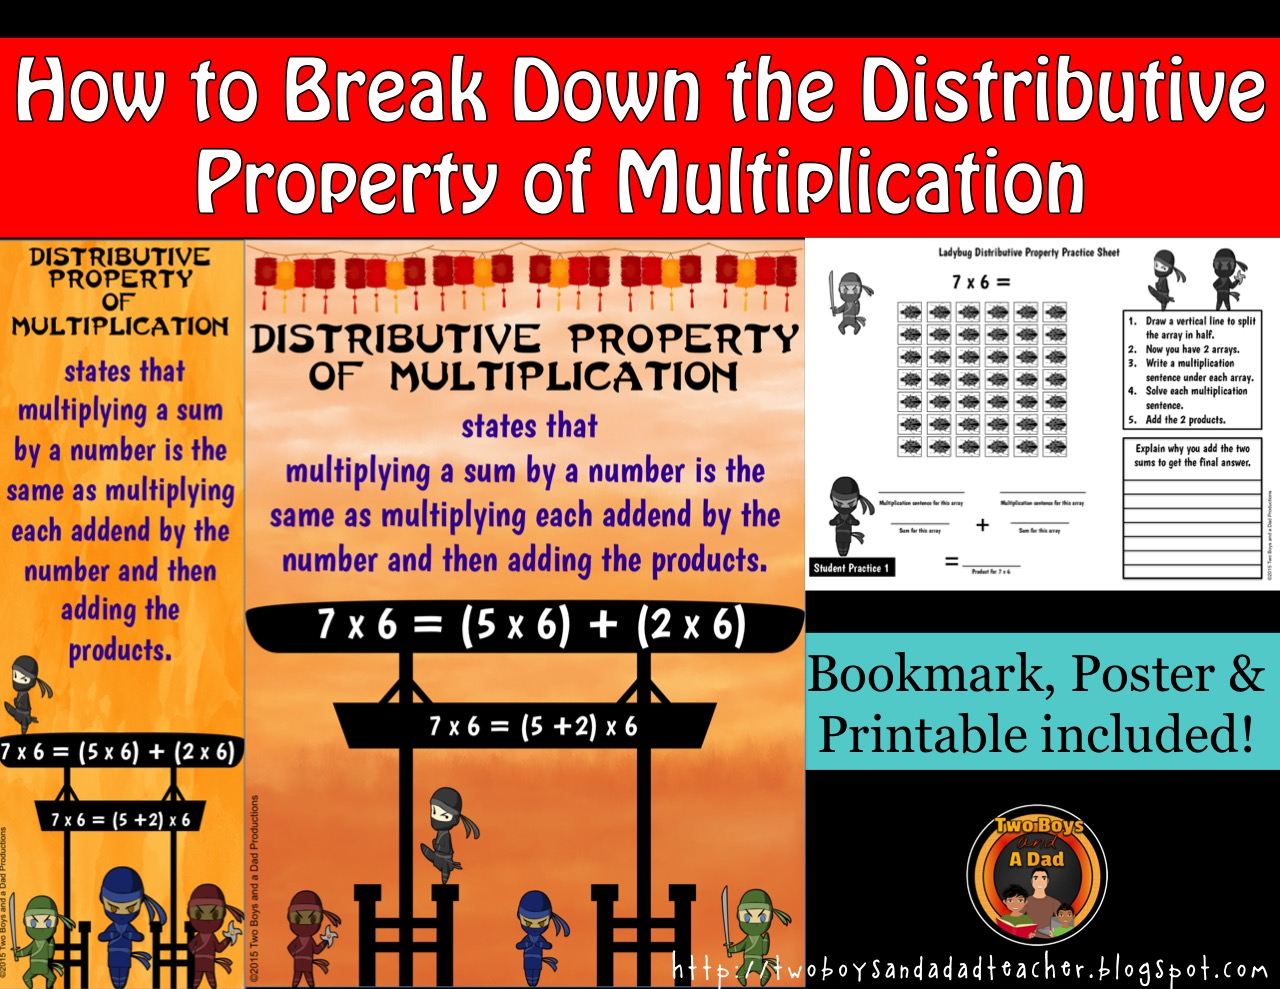 Distributive Property of Multiplication Product